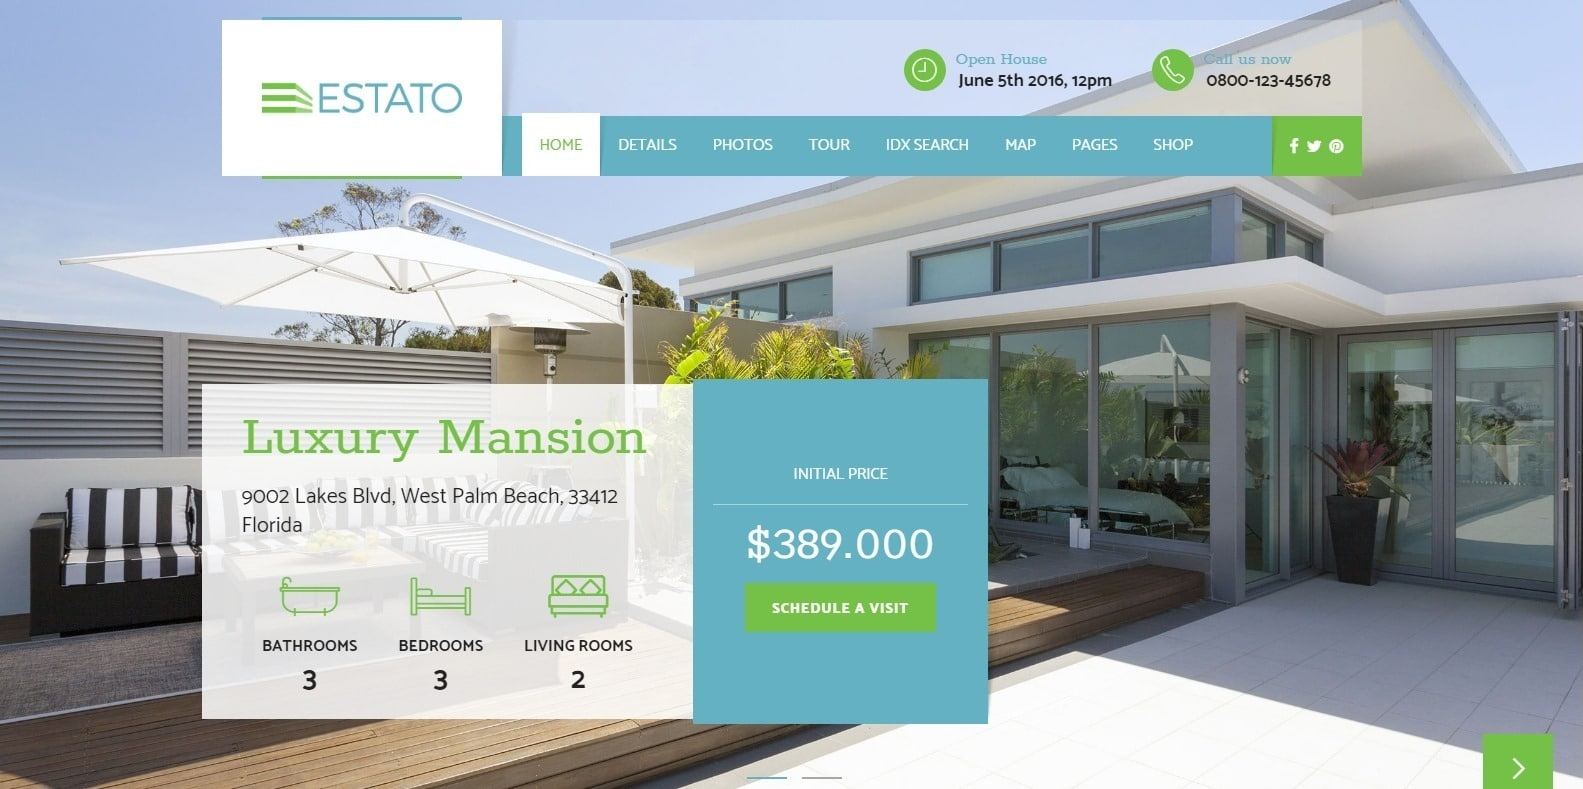 estato-property-management-wordpress-website-template